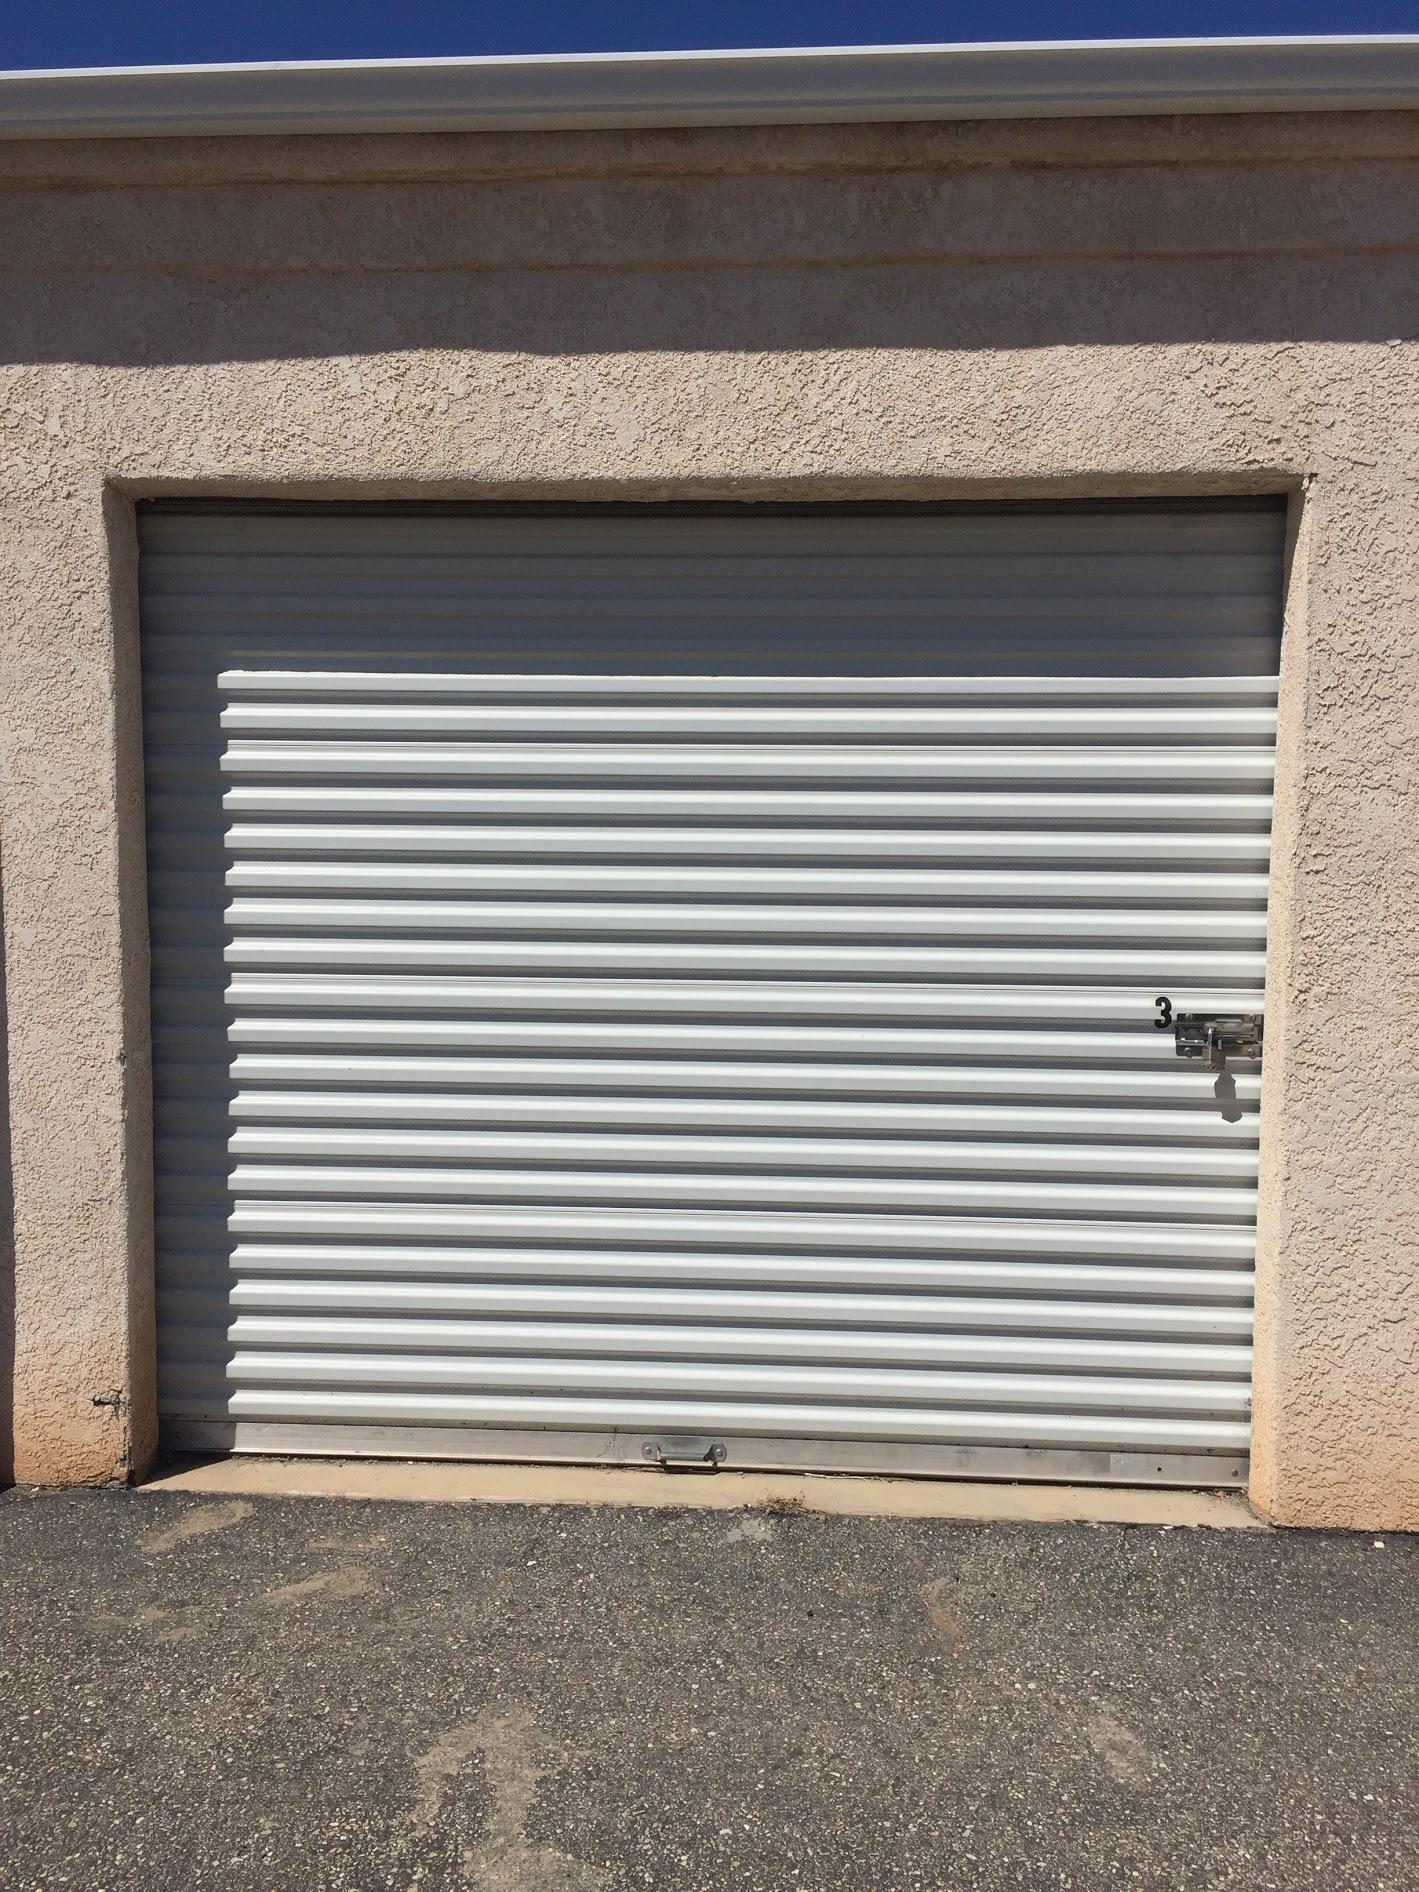 Tenant occupied commercial space for sale. 2 Commercial units & 28 storage units. See Documents for breakdown of units and storage.